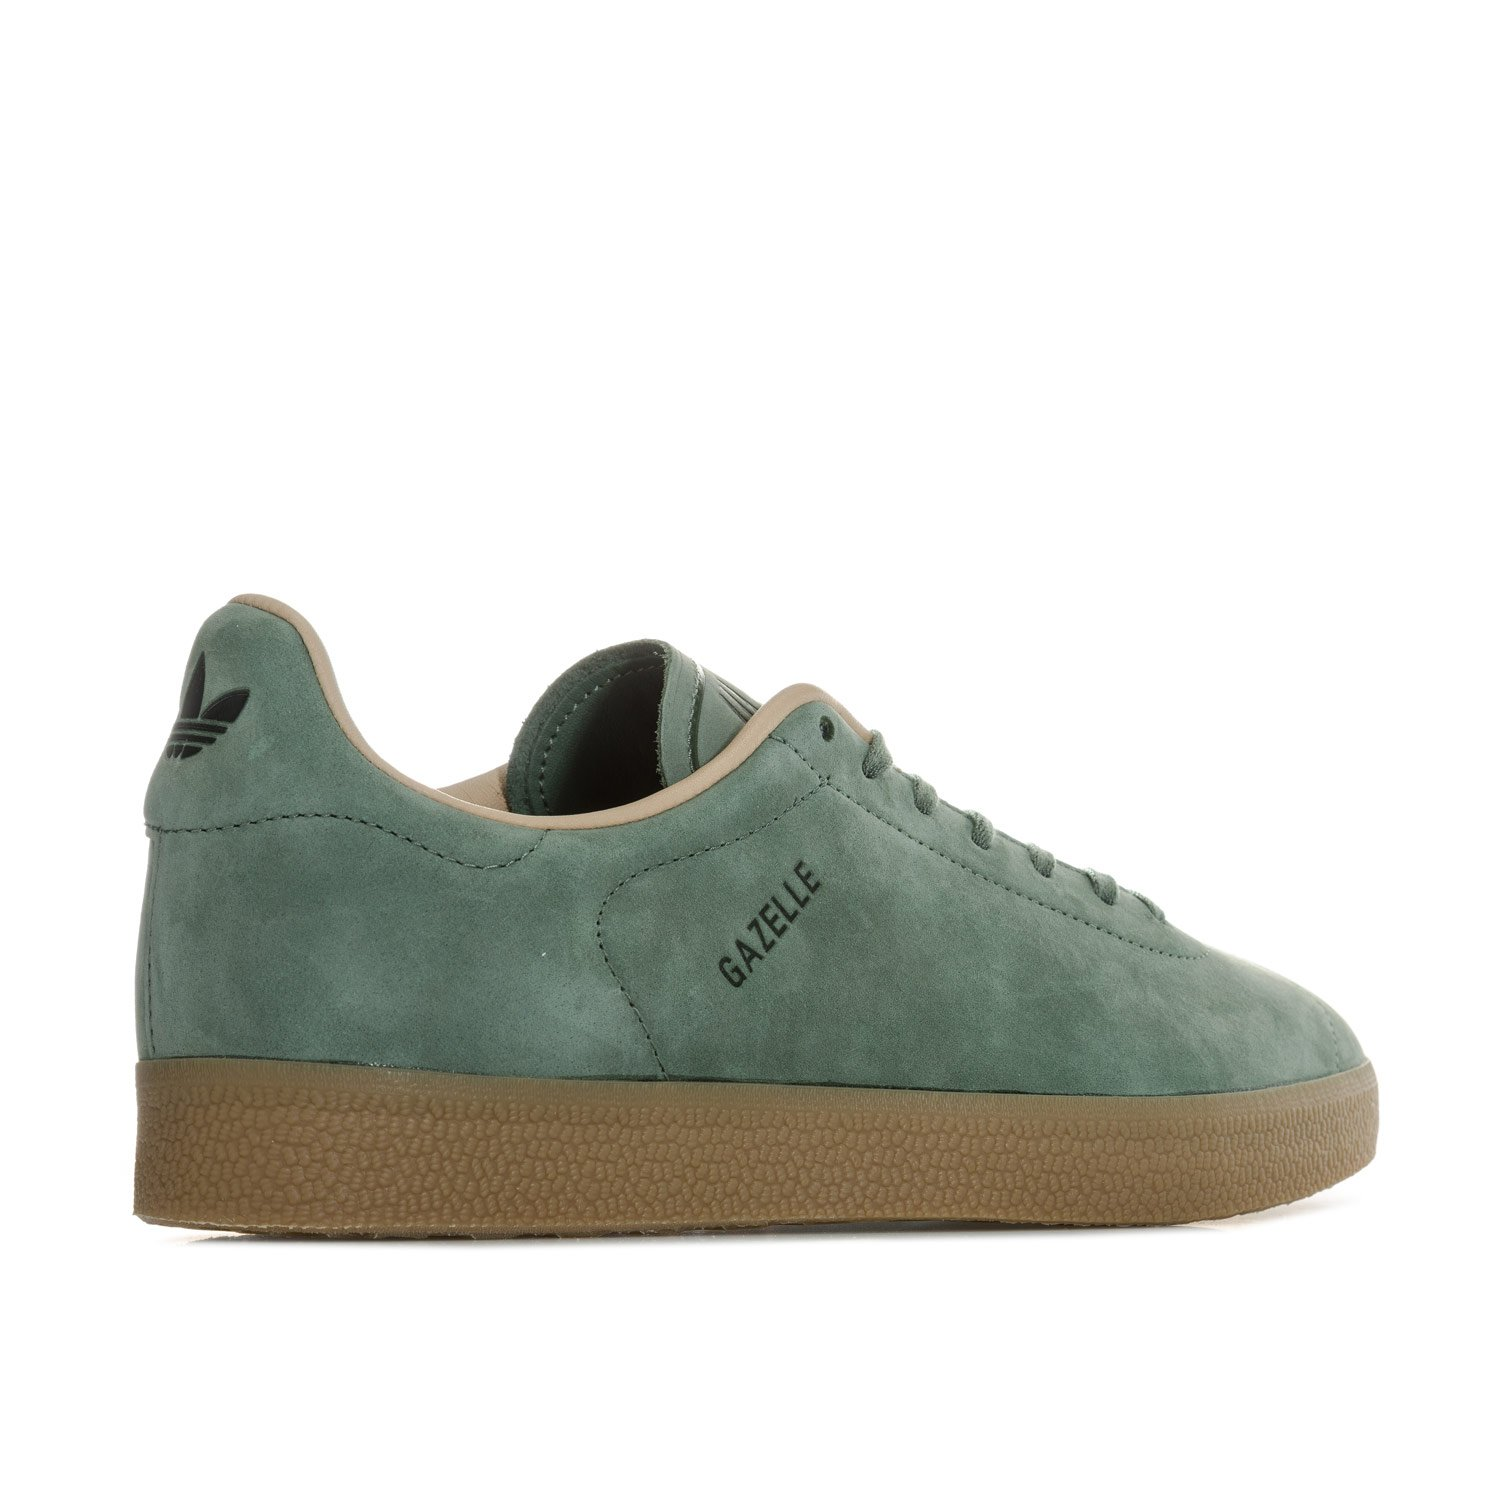 the latest 61c9a 99c3c Amazon.com  adidas Orignals Mens Gazelle Decon Trainers - Green - 5 US   Track  Field  Cross Country